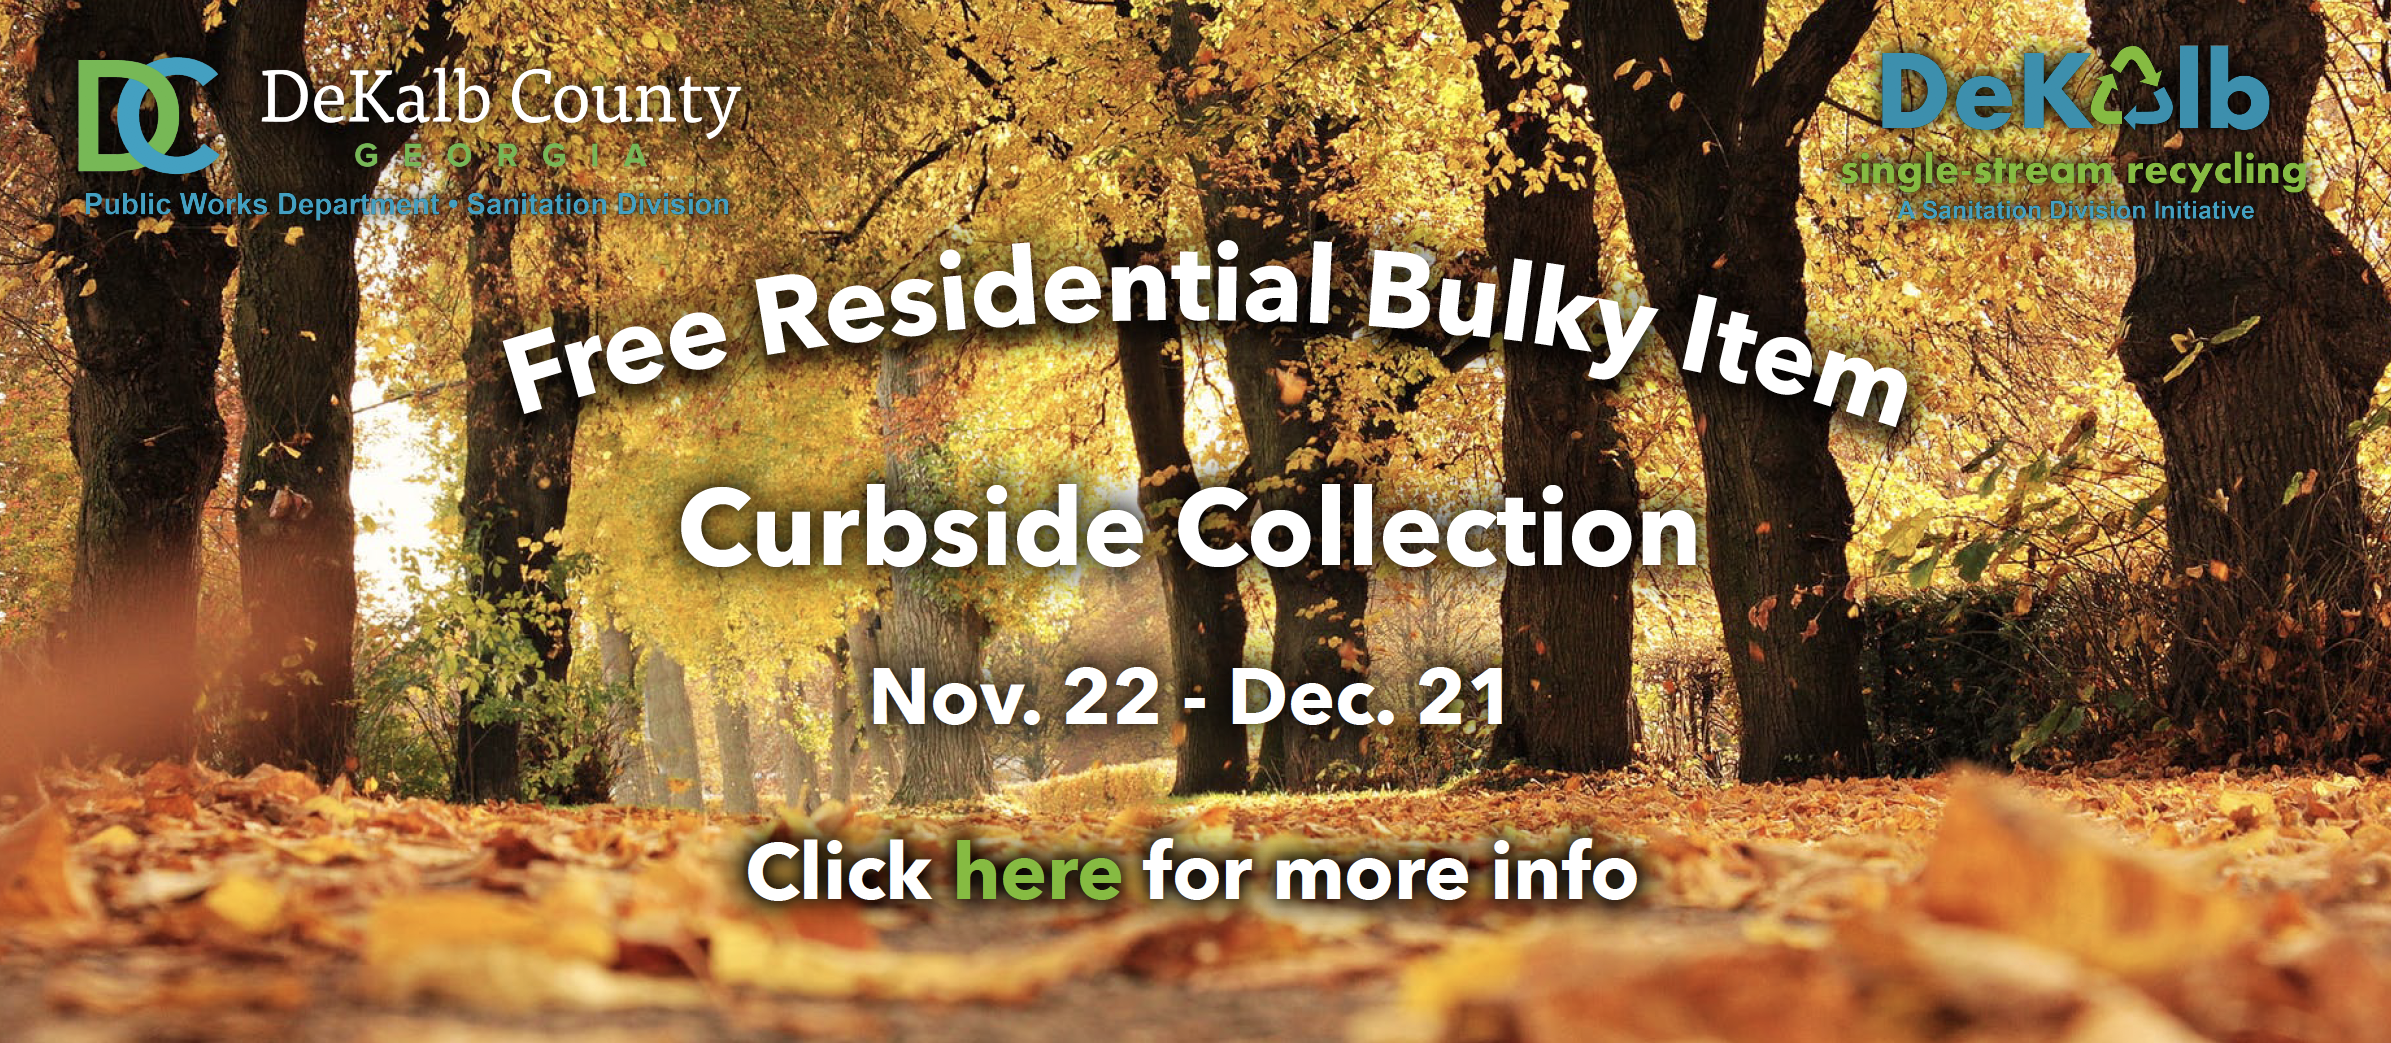 https://www.dekalbcountyga.gov/sites/default/files/2019-10/Free%20Residential%20Bulky%20Item%20Curbside%20Collection%20-%20Sliding%20Graphic.png